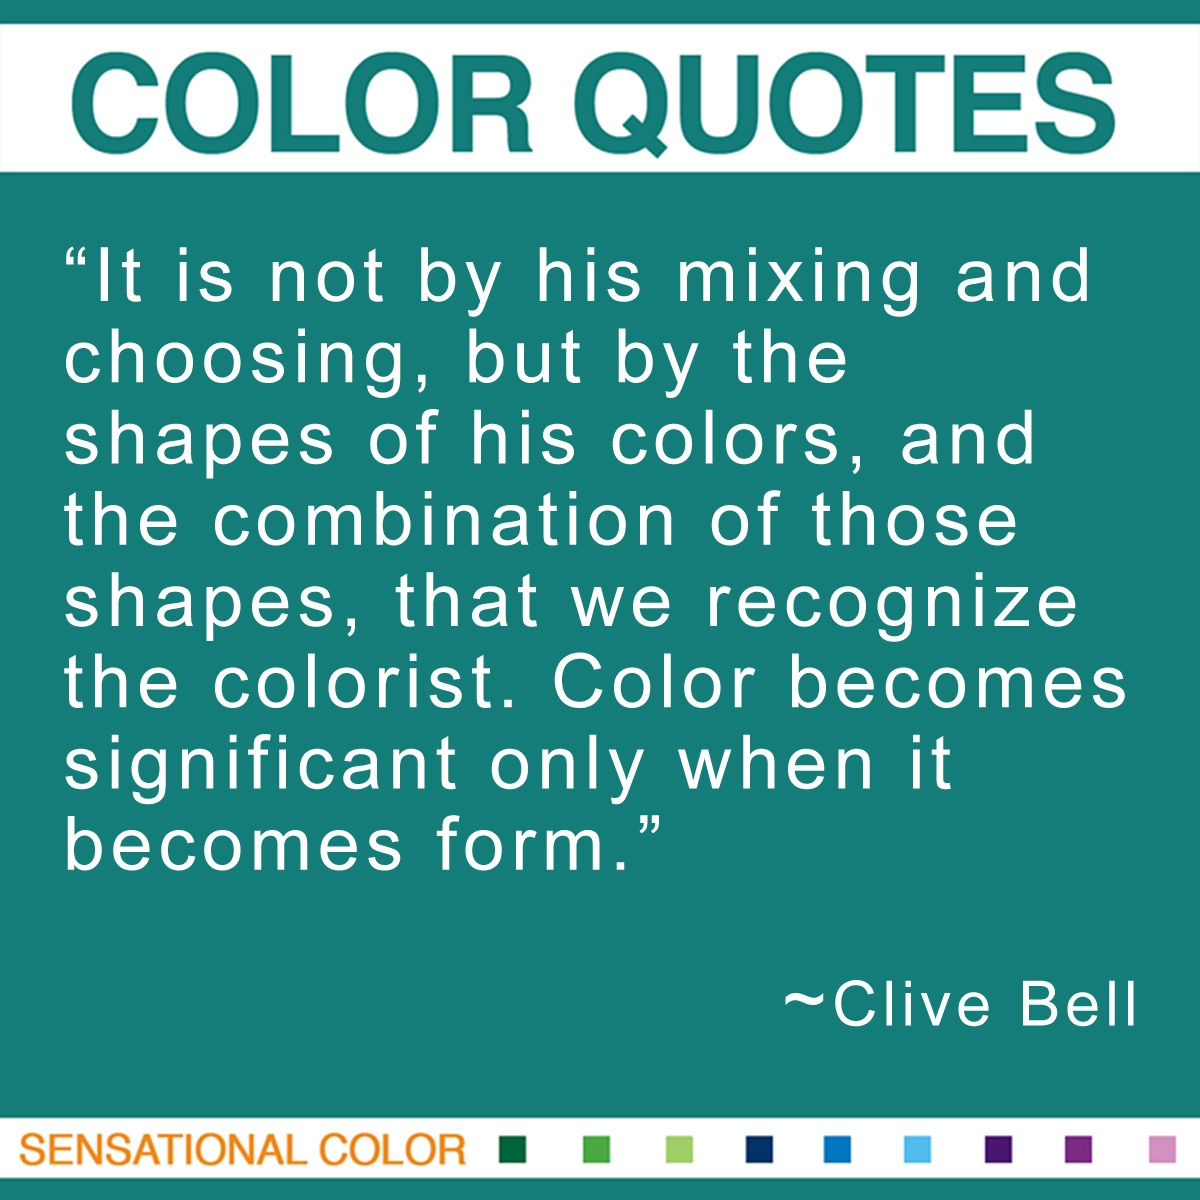 """It is not by his mixing and choosing, but by the shapes of his colors, and the combination of those shapes, that we recognize the colorist. Color becomes significant only when it becomes form."" - Clive Bell"